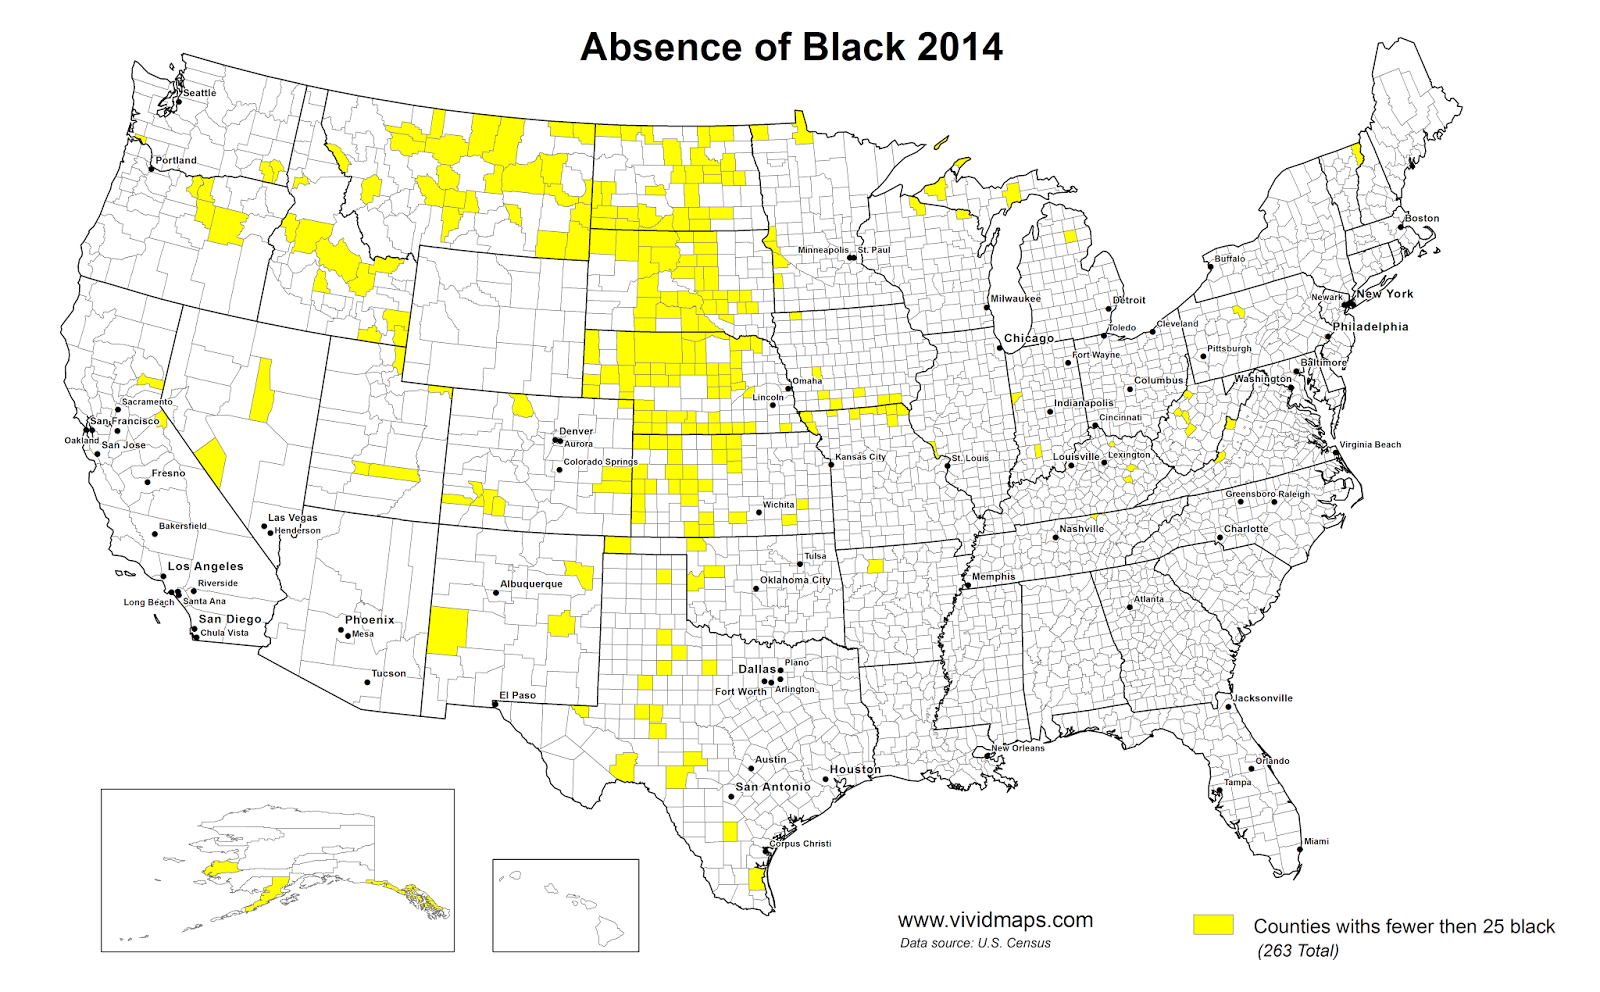 Counties with fewer than 25 black Americans, 2014